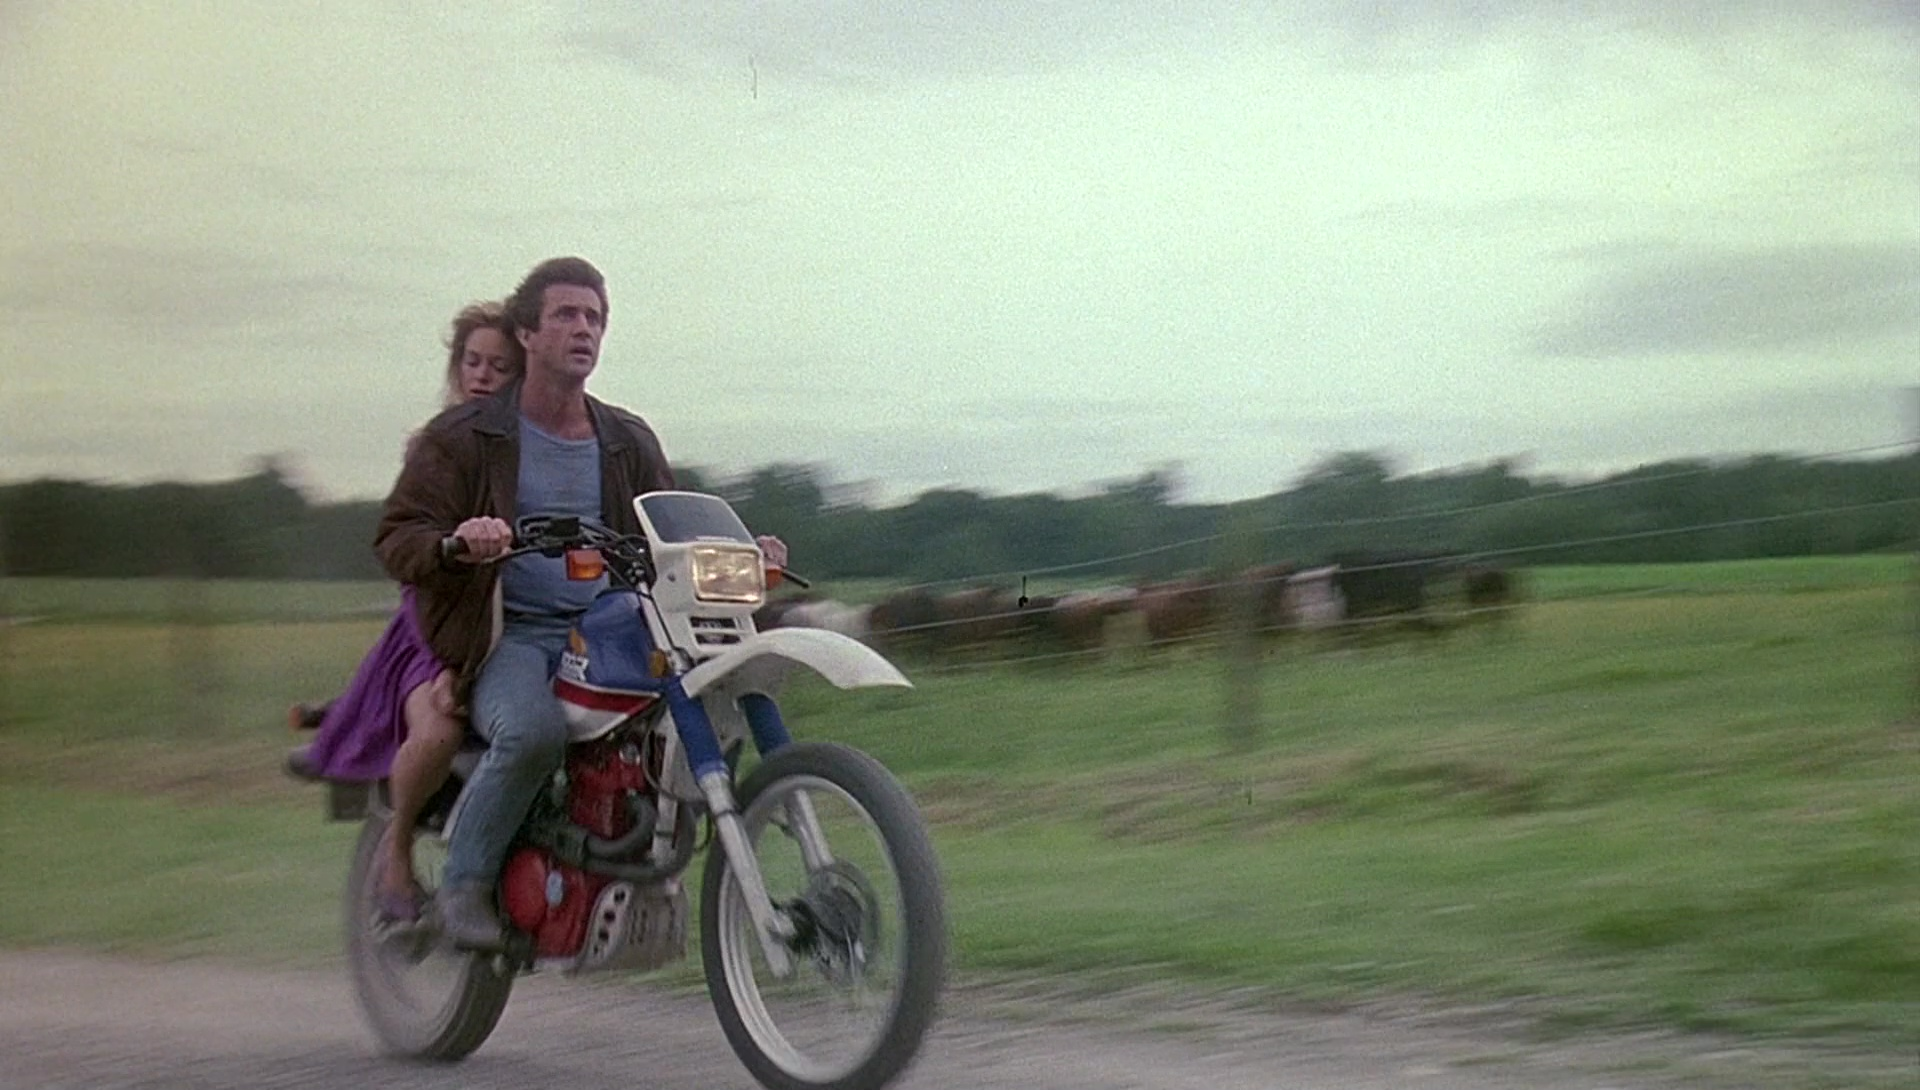 Seen in The Movie: Honda XL 600 R Motorcycle Driven by Mel Gibson in Bird on a Wire (1990)